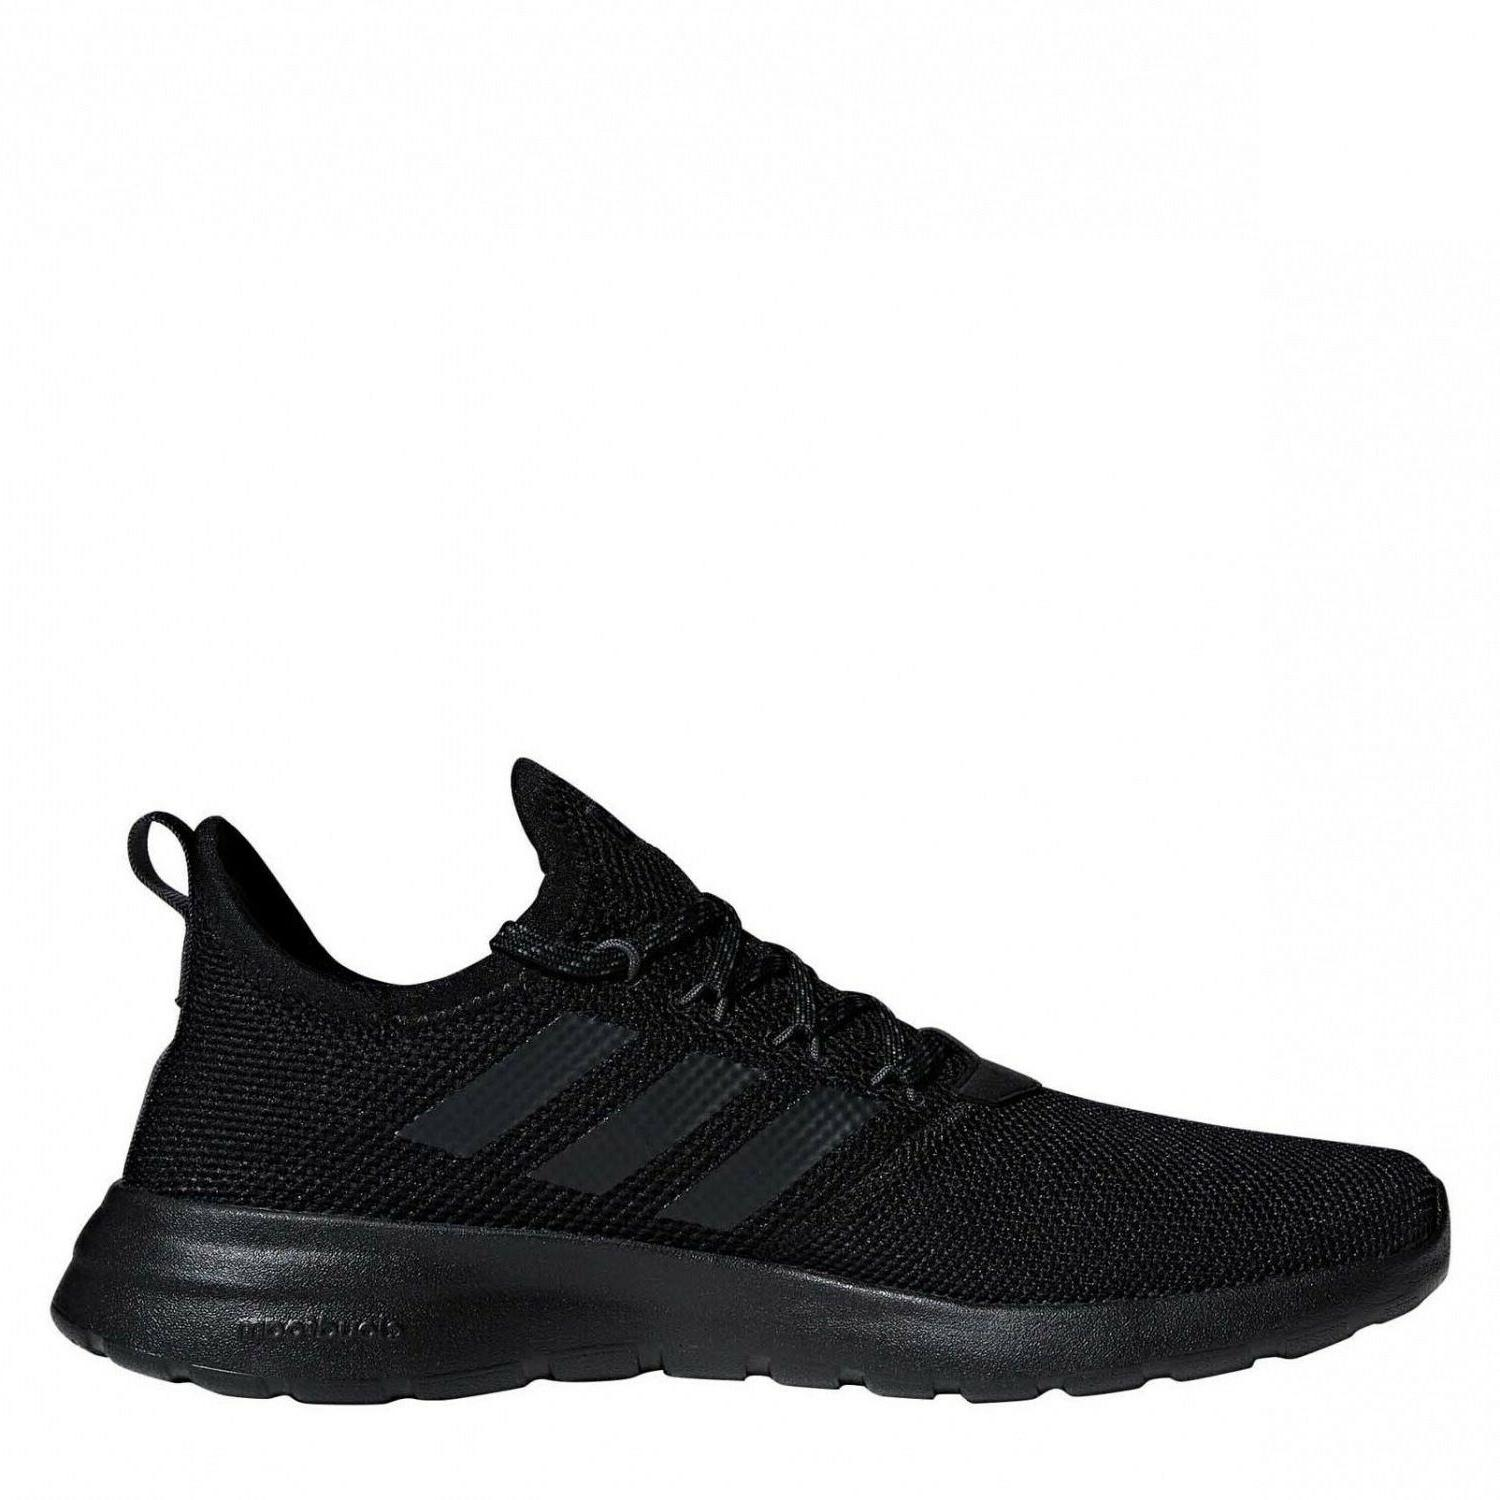 Mens Adidas Racer Sneaker Athletic Shoes F36642 8-14